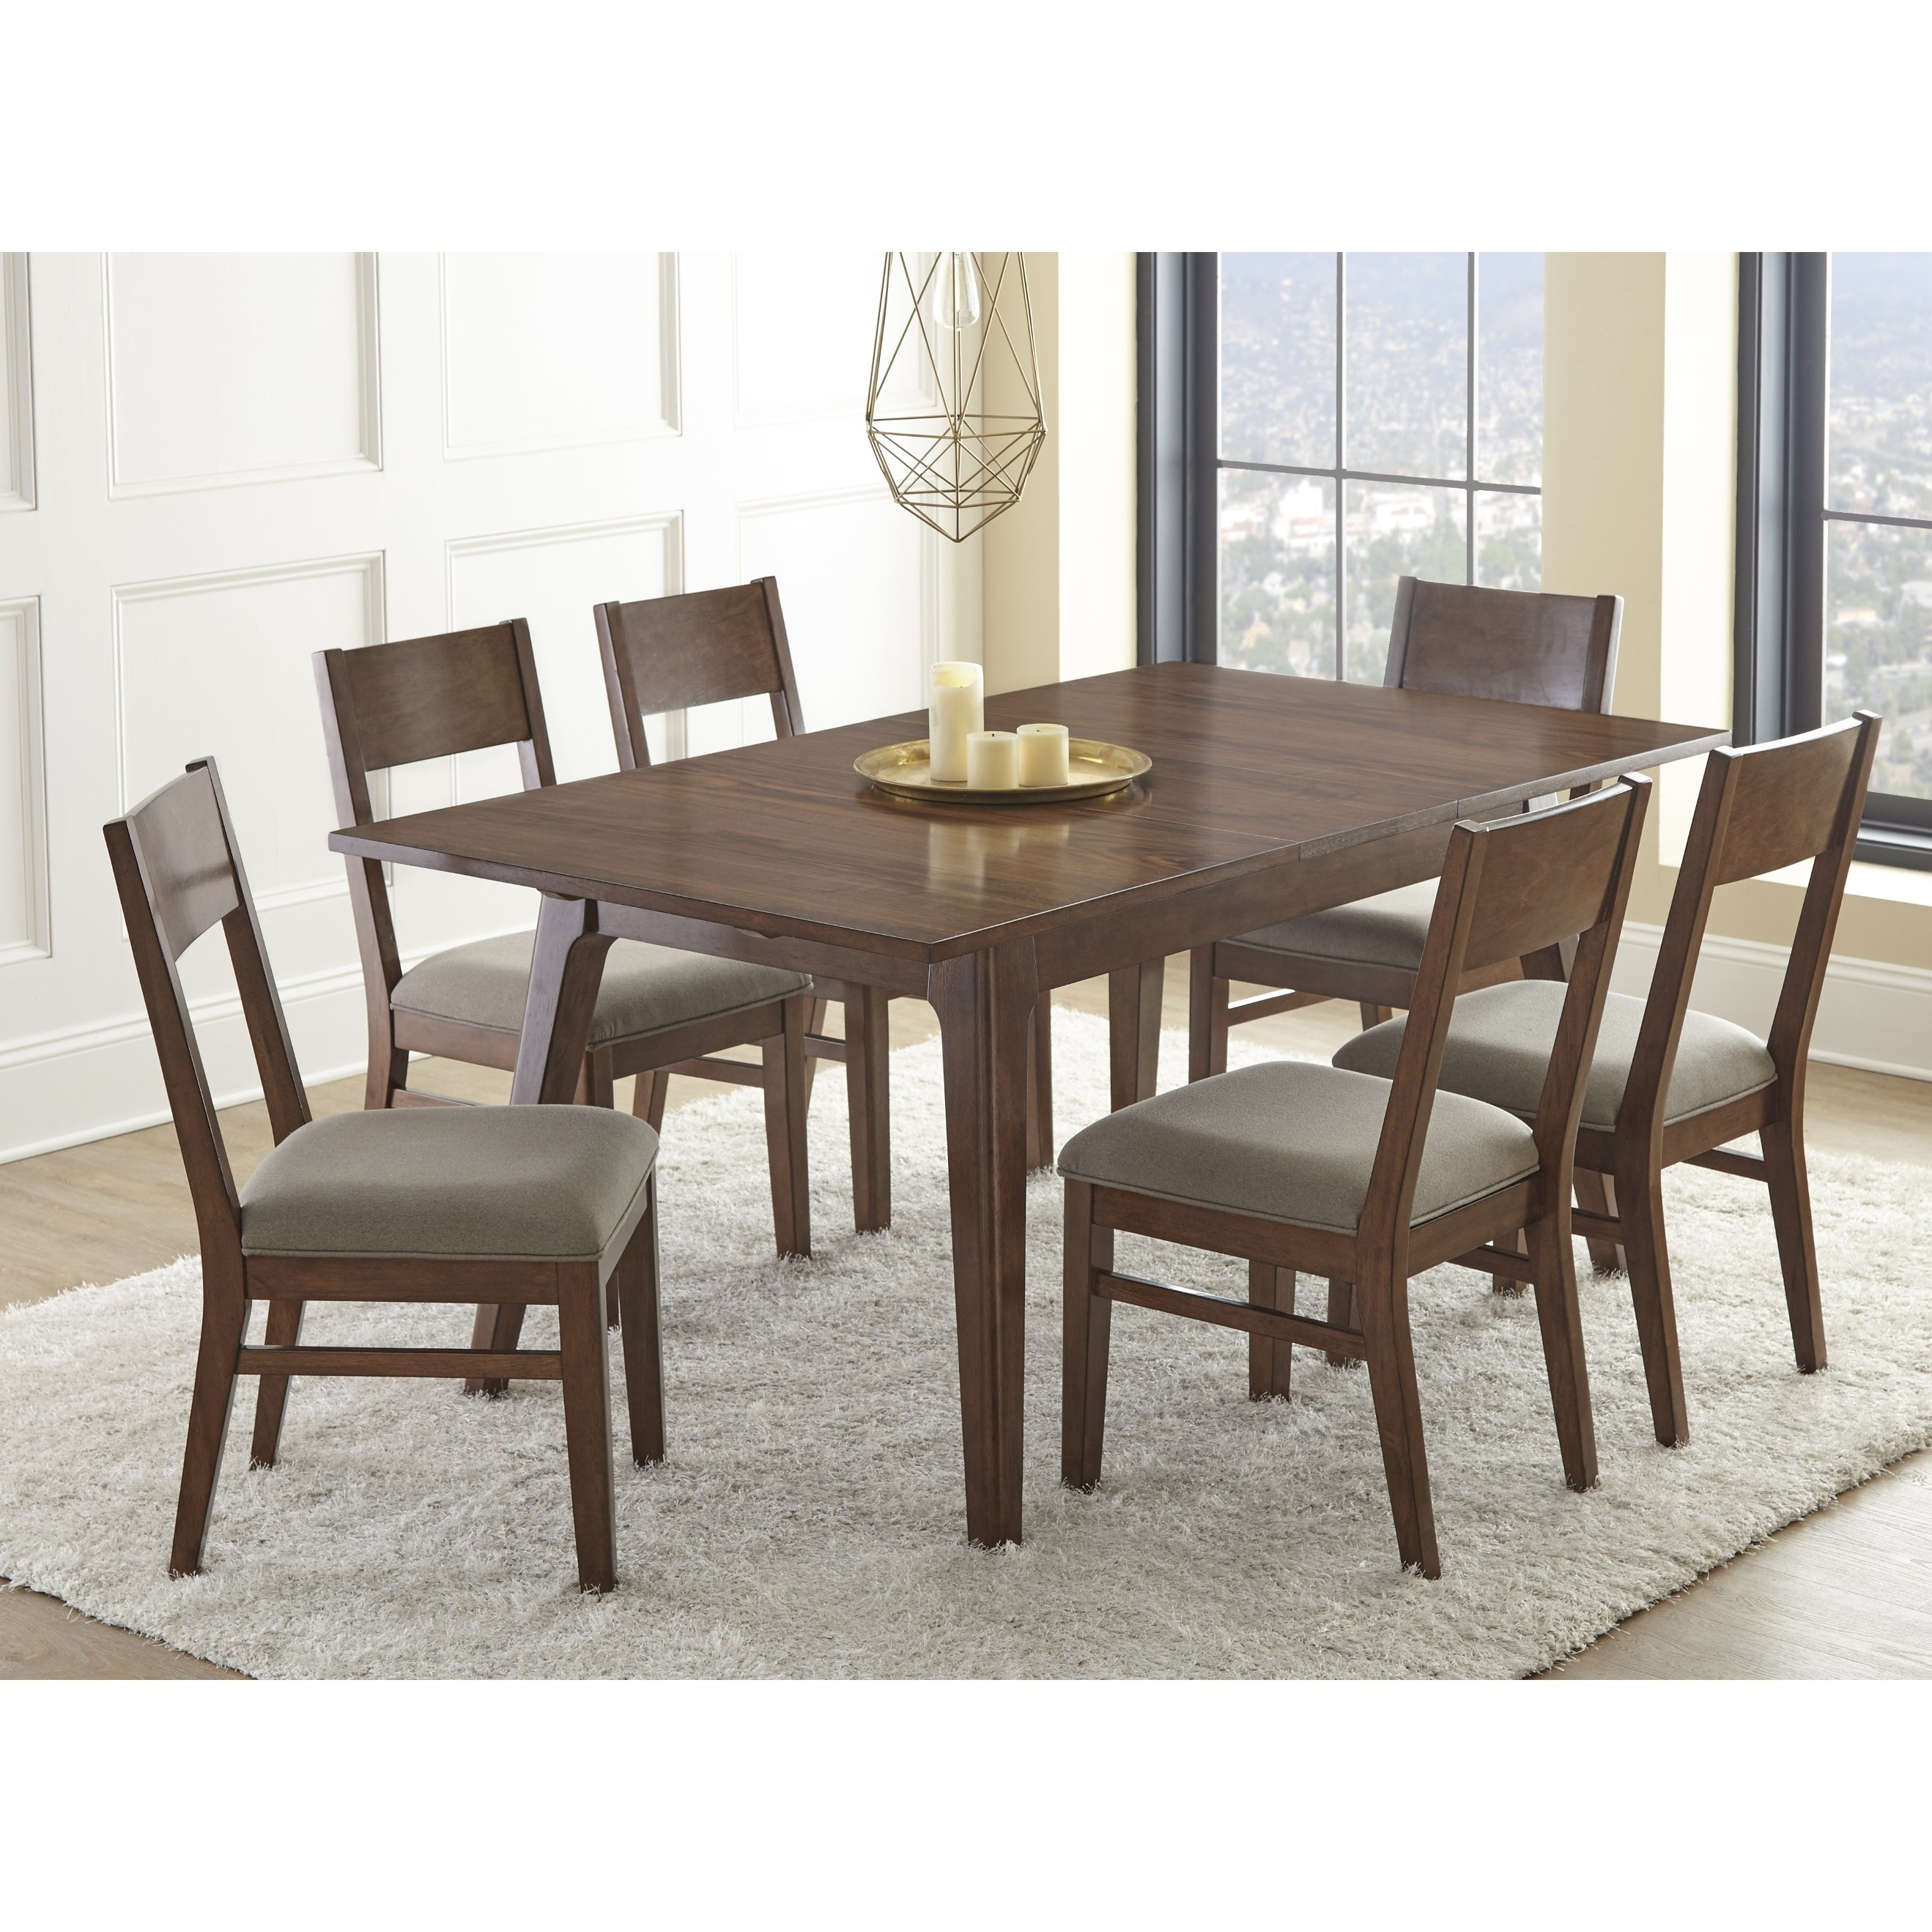 Buy 5 Piece Sets, Wood Kitchen & Dining Room Sets Online At Within Current Goodman 5 Piece Solid Wood Dining Sets (Set Of 5) (Image 4 of 20)